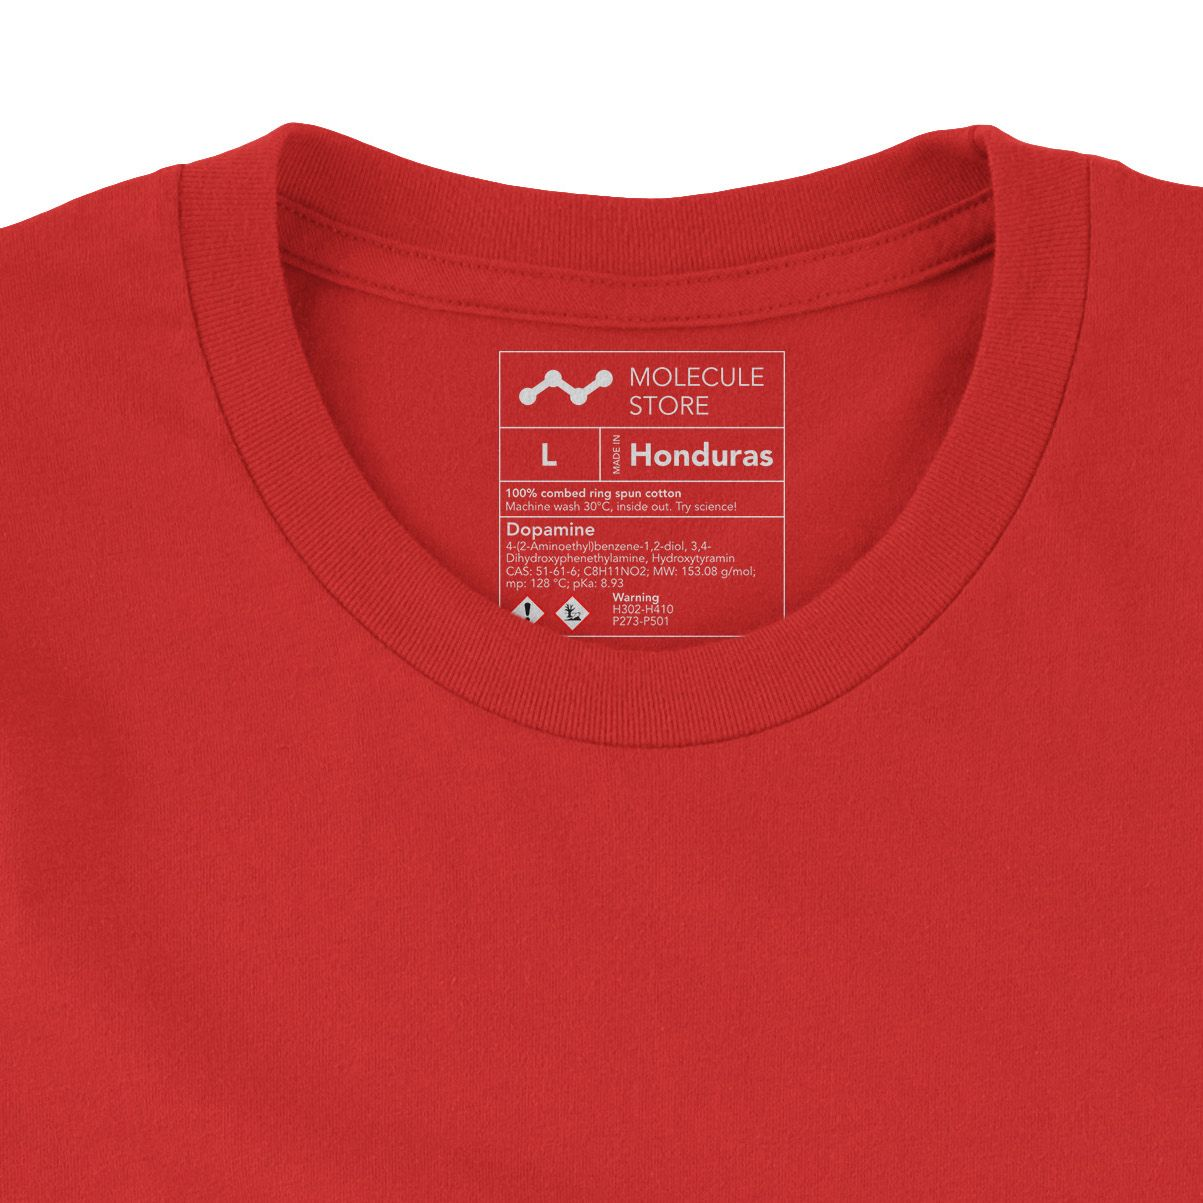 Dopamine Molecule T-Shirt Red 3001 Label